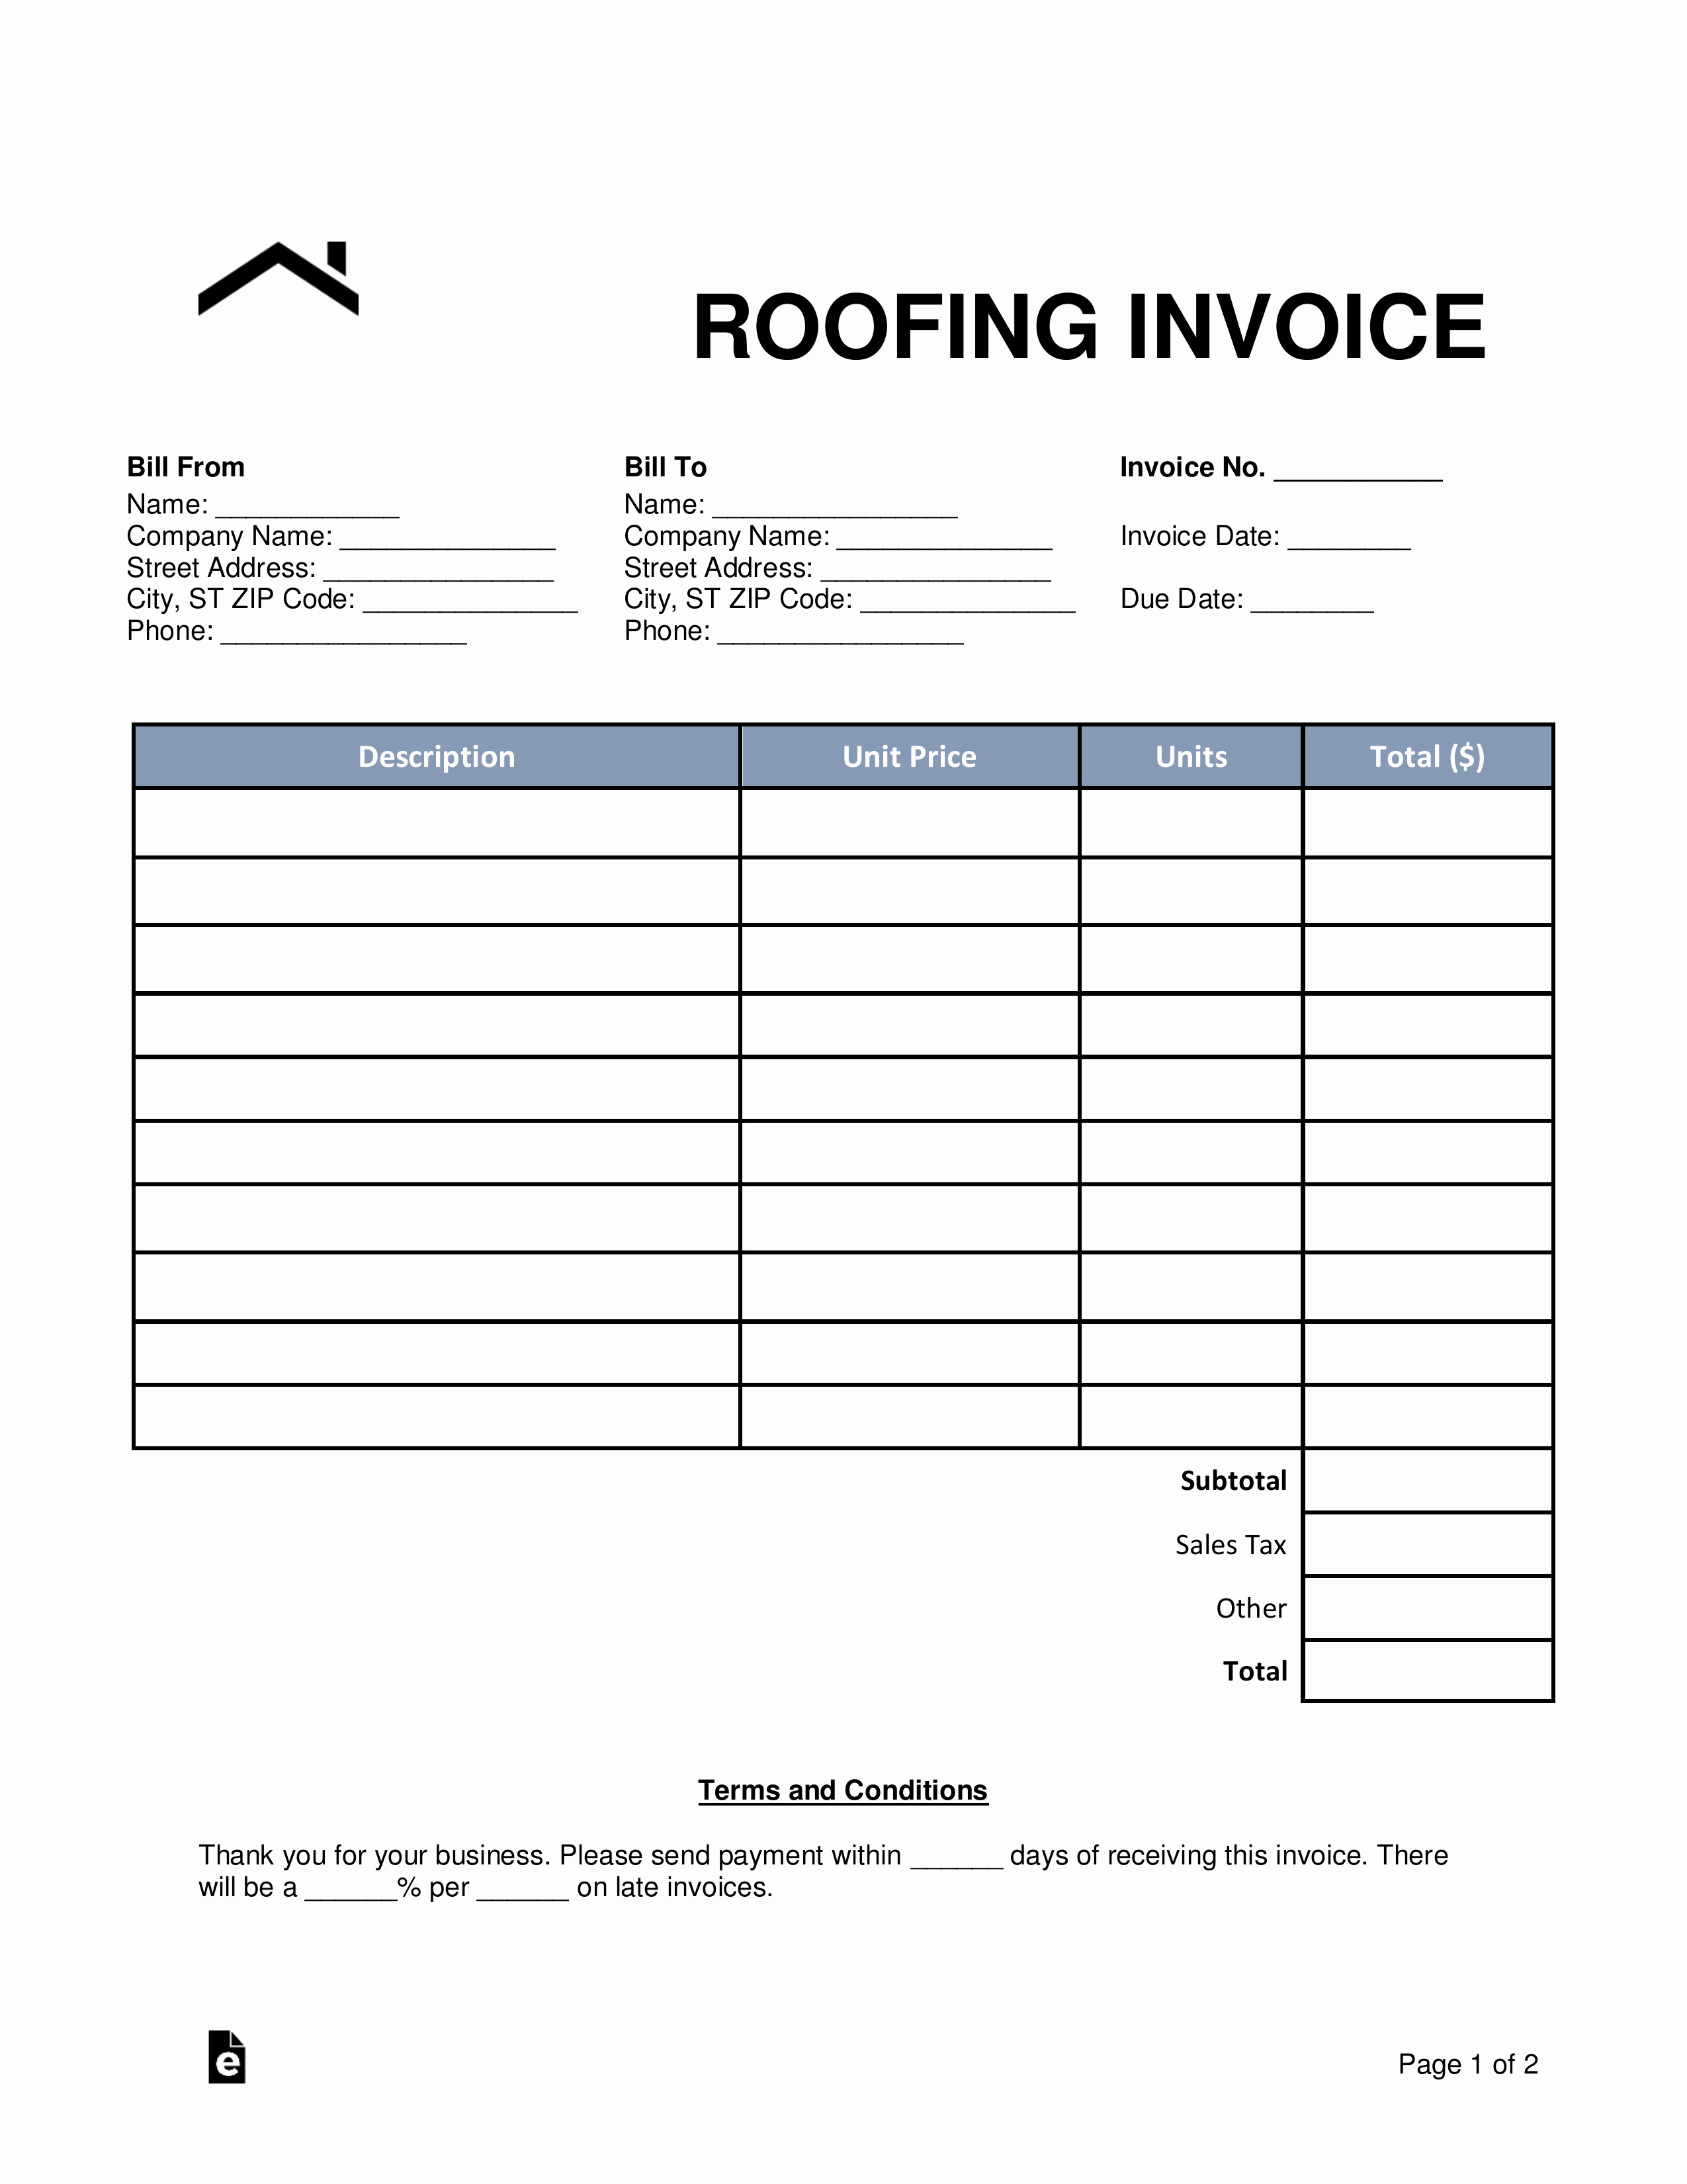 Free Roofing Estimate Template Elegant Free Roofing Invoice Template Word Pdf